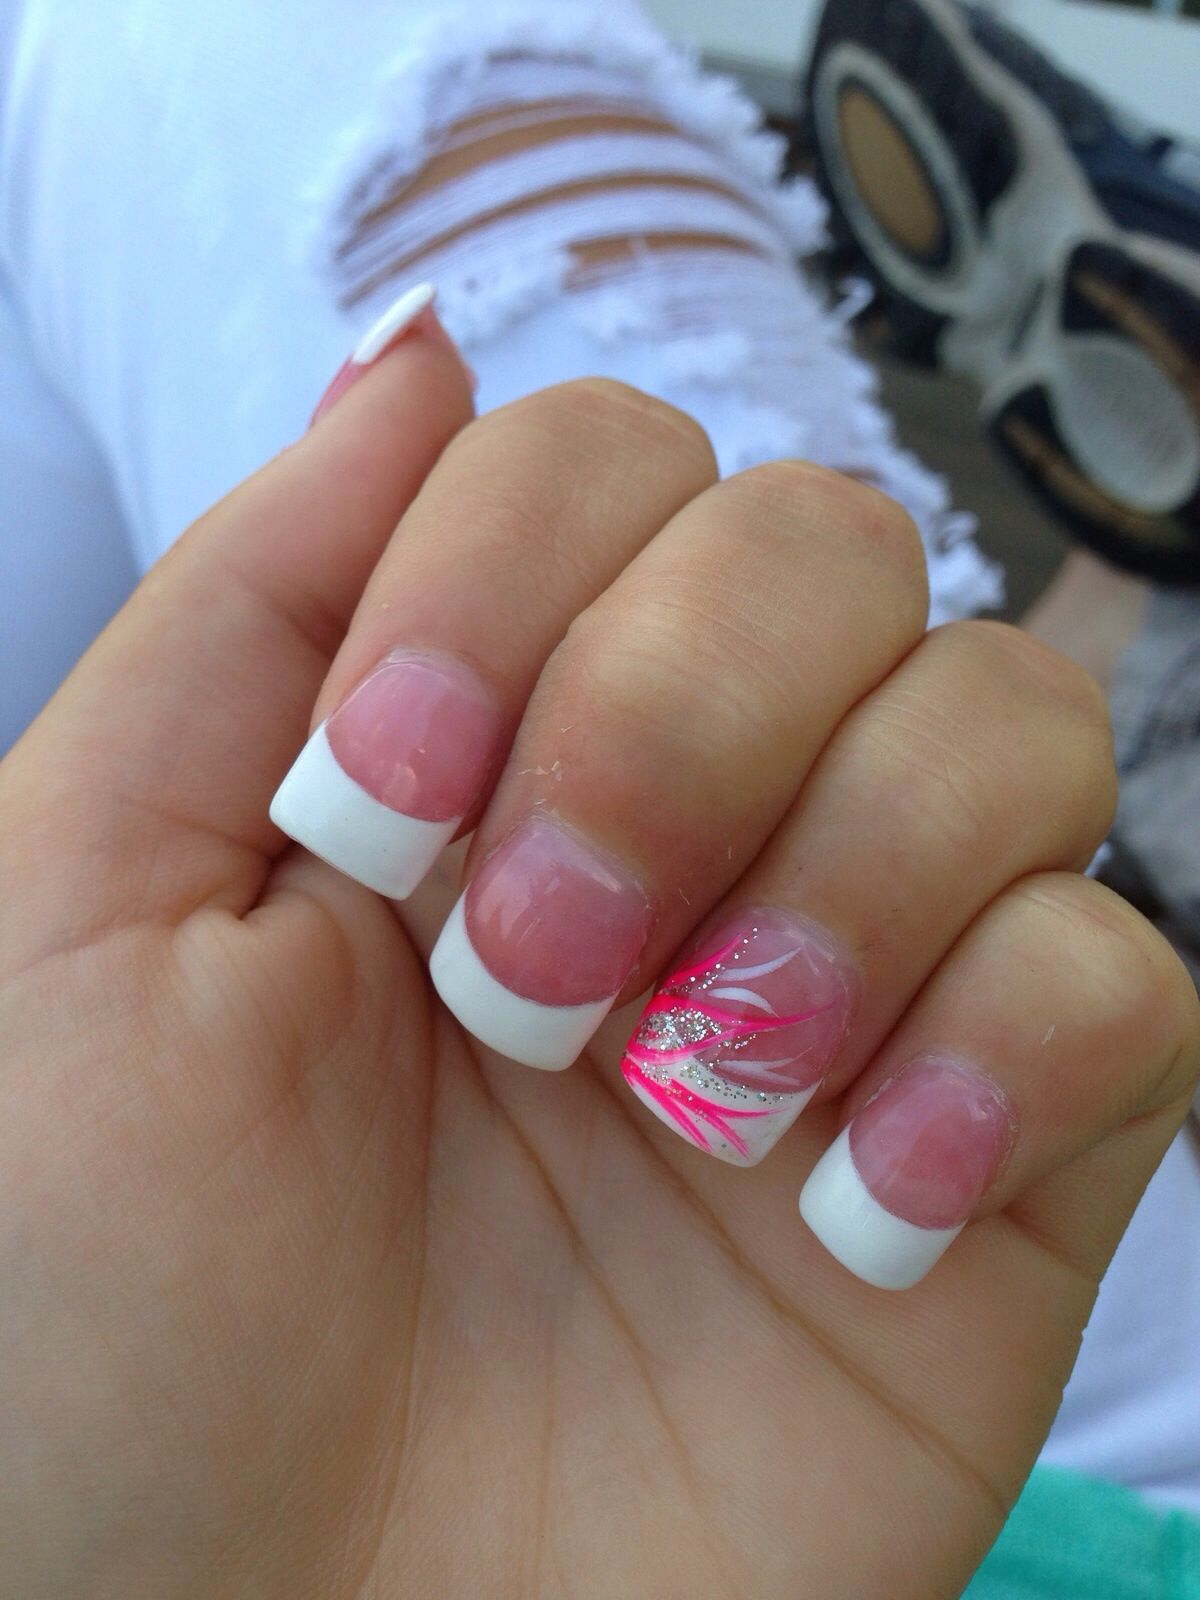 pink and white tips with pink accent nail nails pinterest pink accents accent nails and